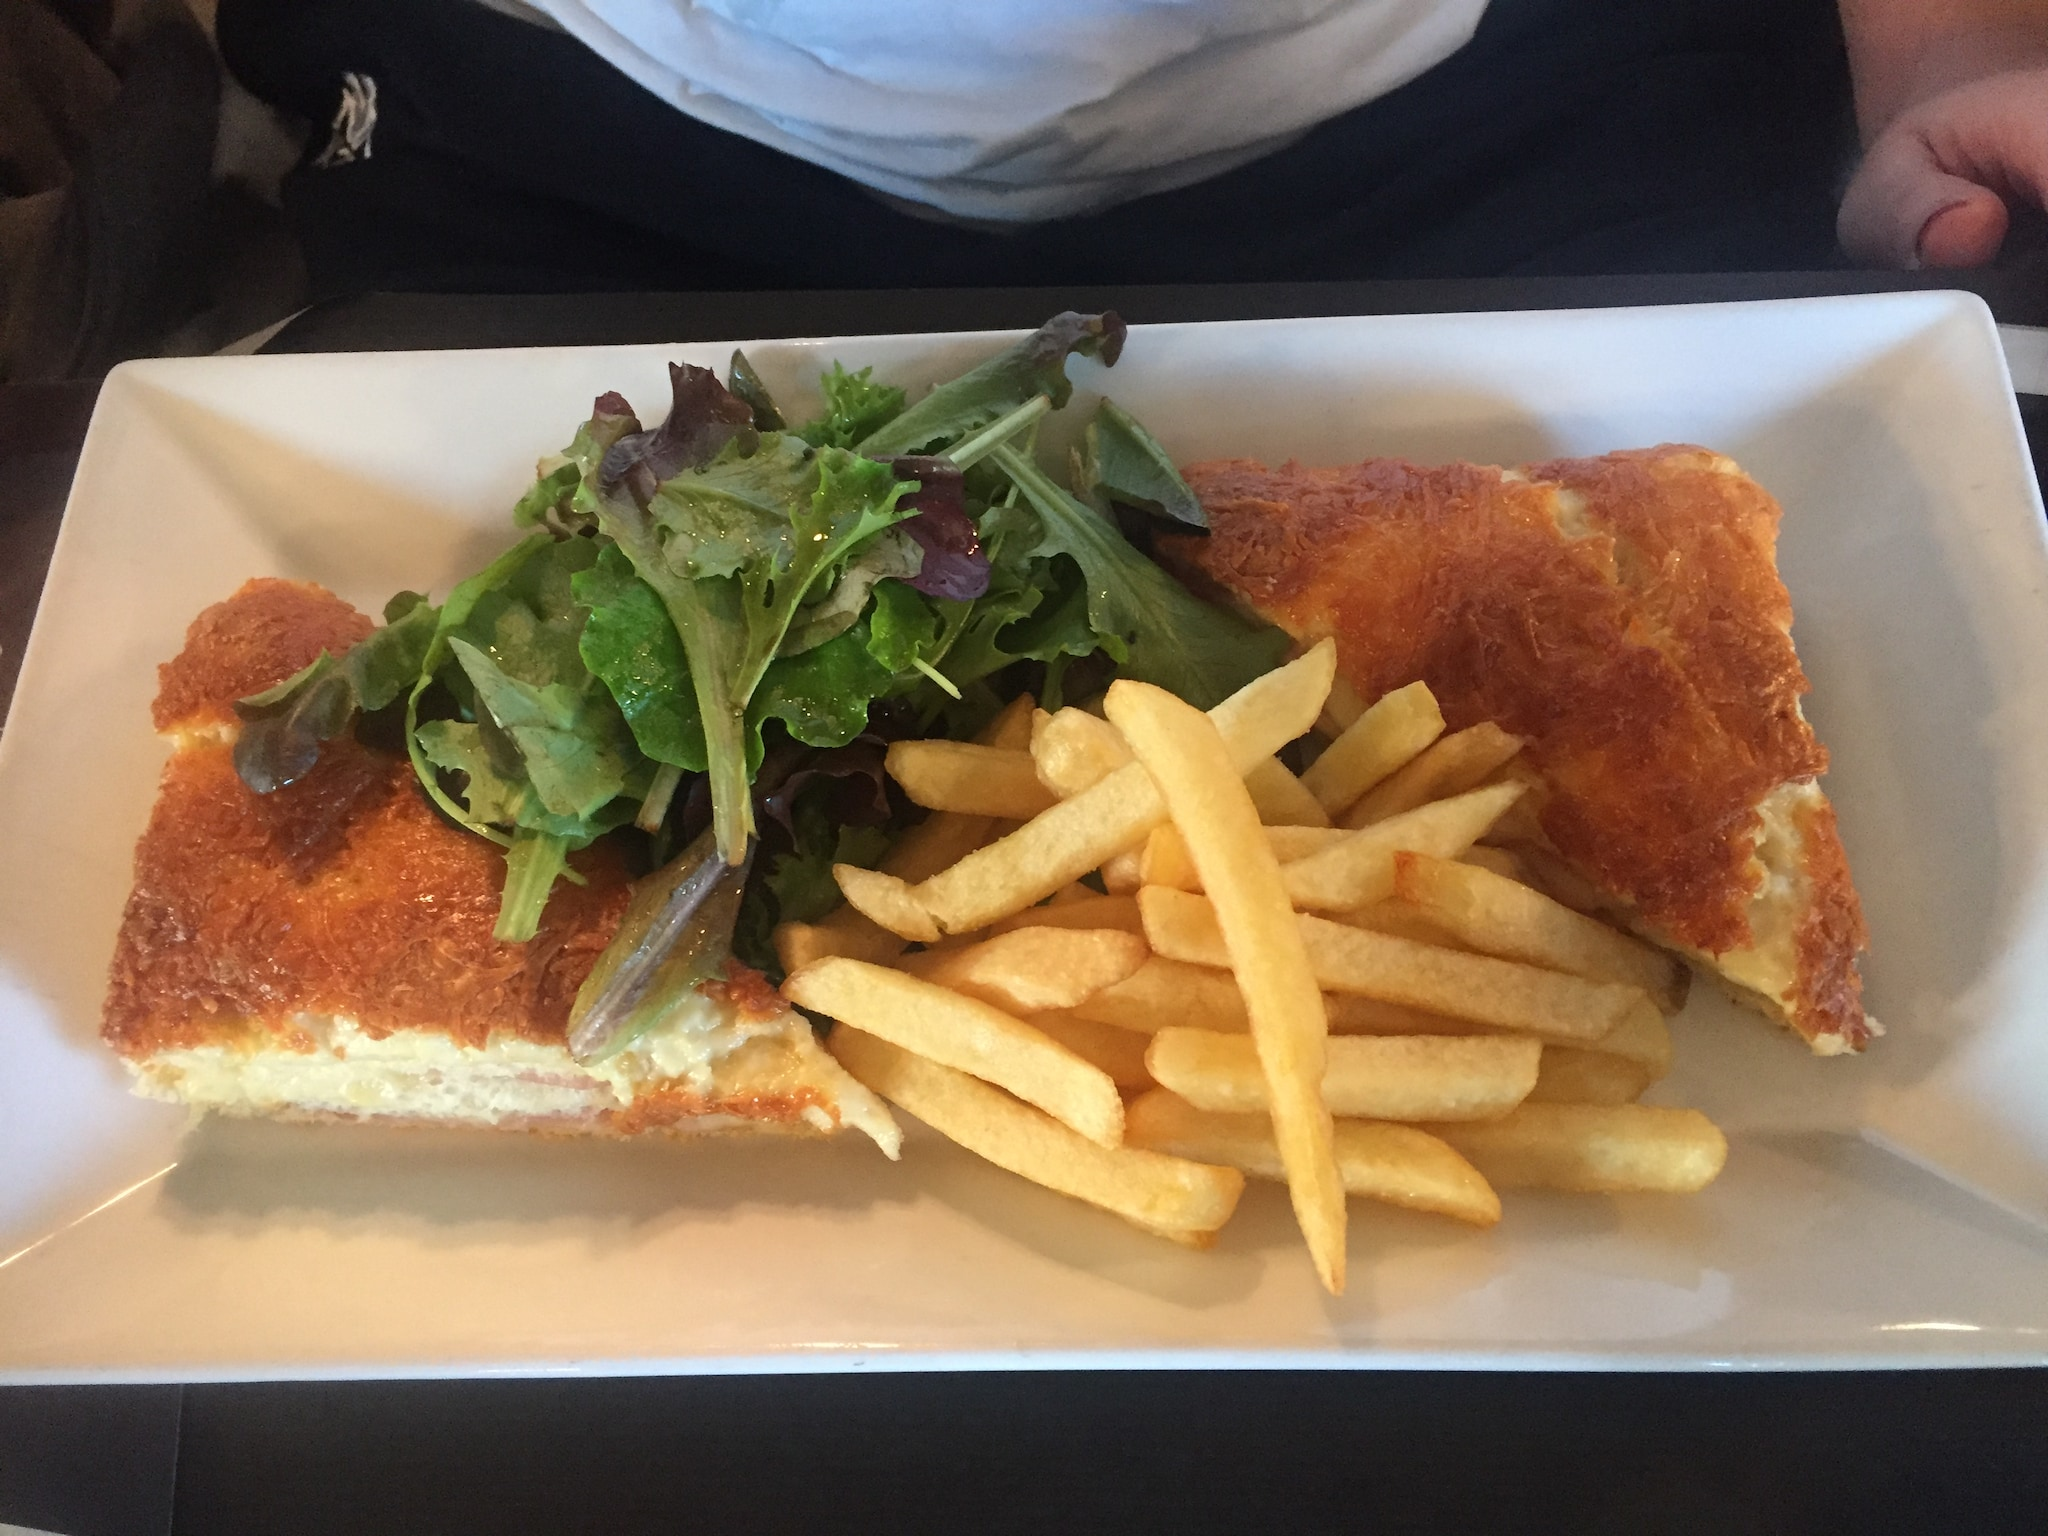 From Paris: Very similar to a grilled cheese sandwich. This is a boiled ham and cheese sandwich that you can either bake or fry. If you're wondering what the female version of this dish is, simply add a fried egg on top of the sandwich and go from Croque Monsieur to Croque Madame!